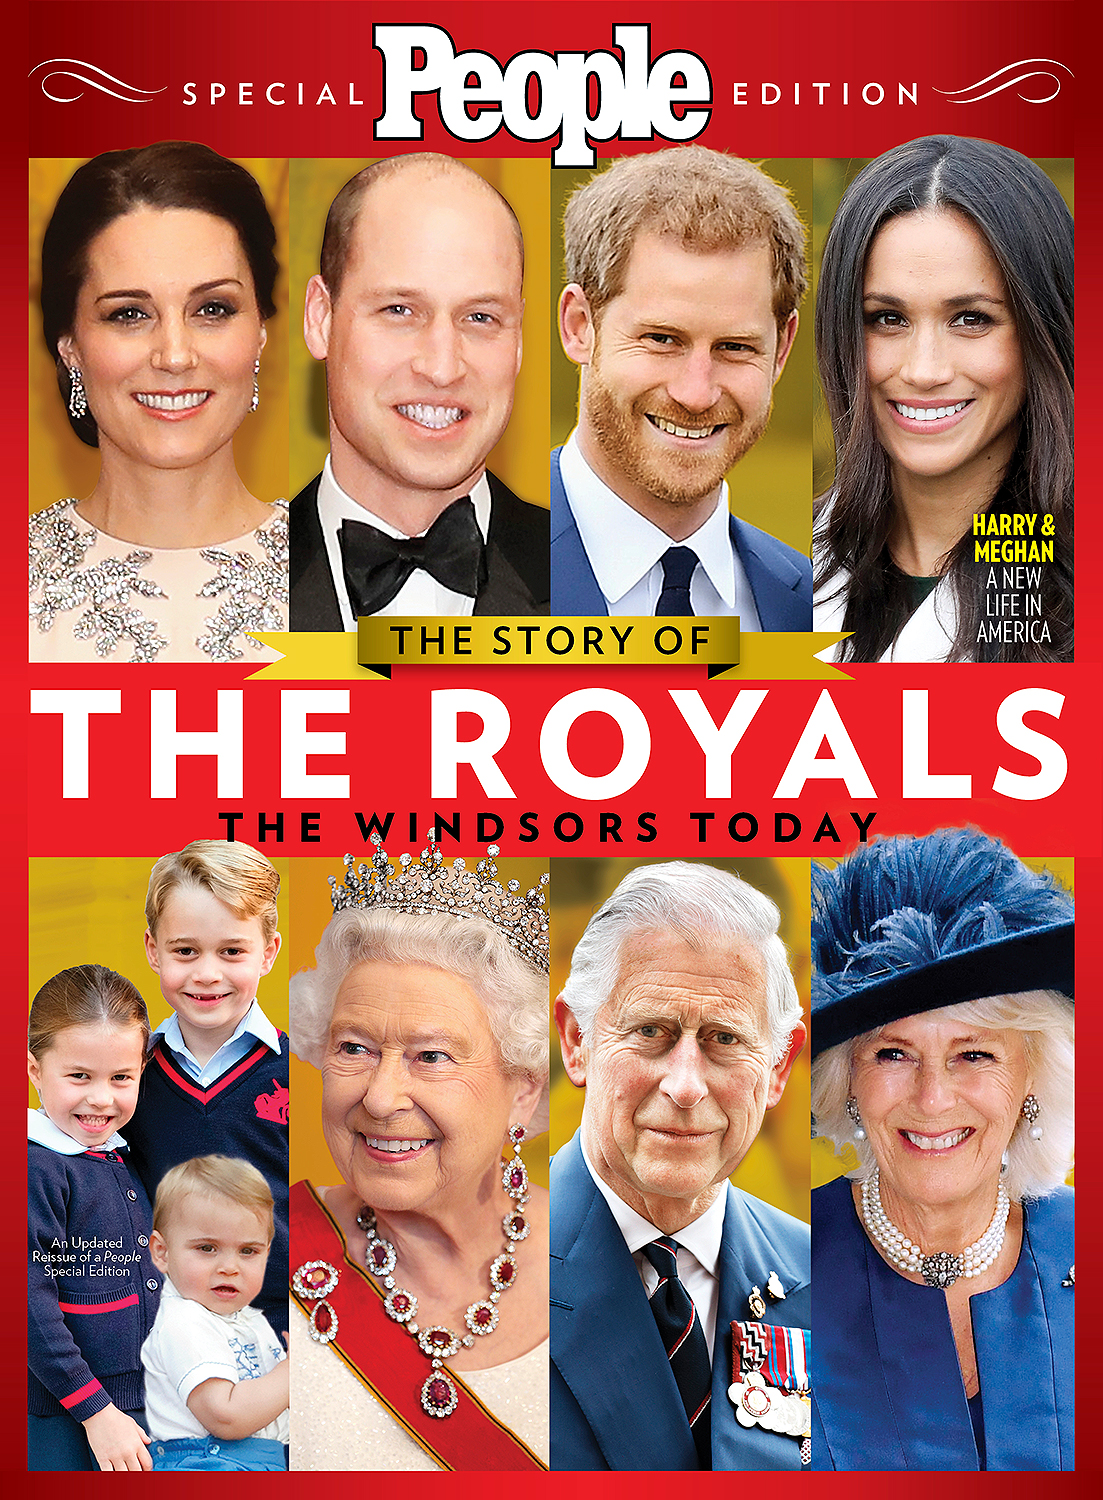 The Royals cover